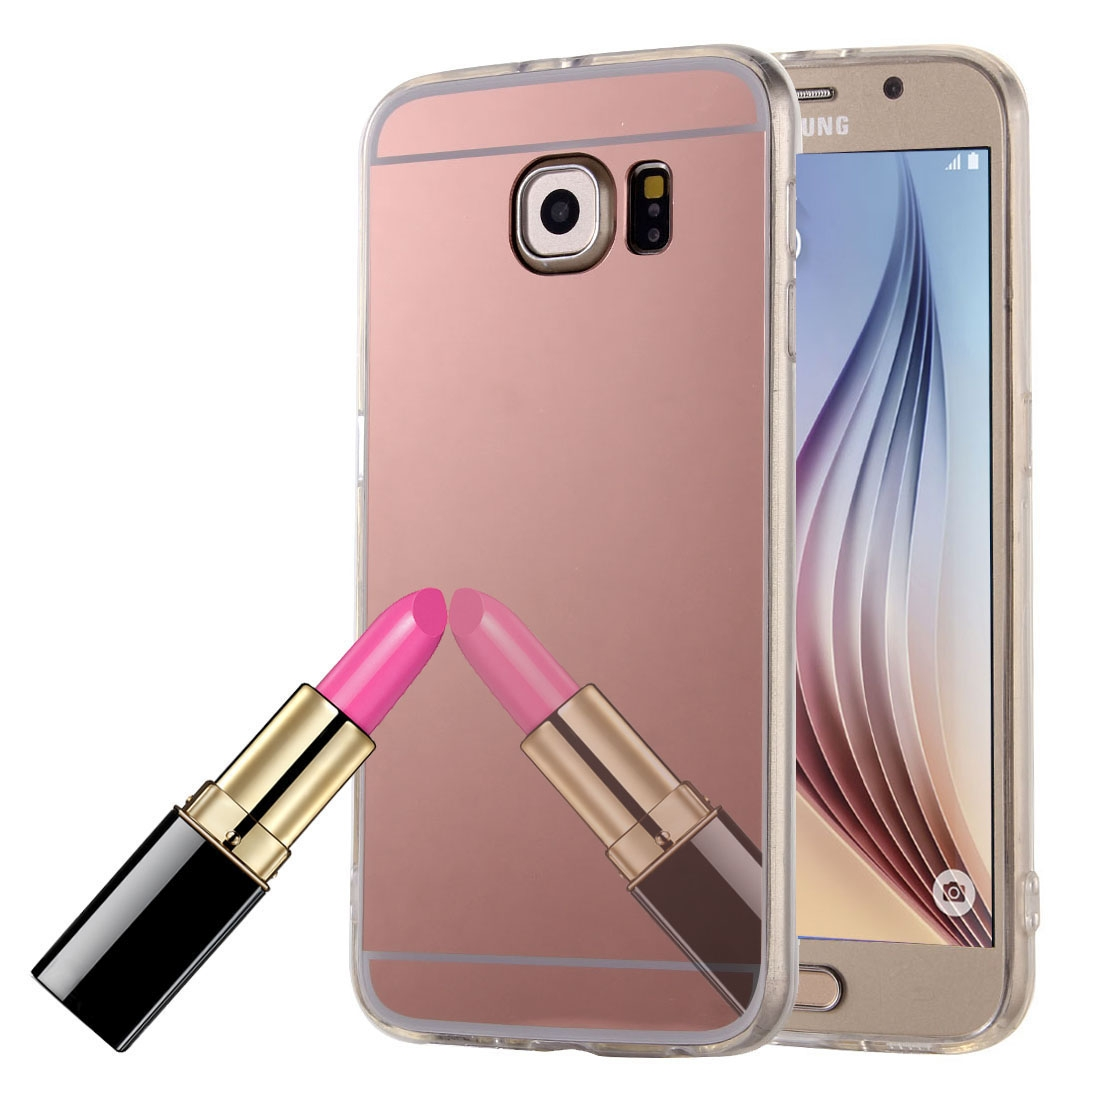 handy h lle spiegel mirror soft case schutz h lle cover f r samsung galaxy s6 edge rose gold. Black Bedroom Furniture Sets. Home Design Ideas